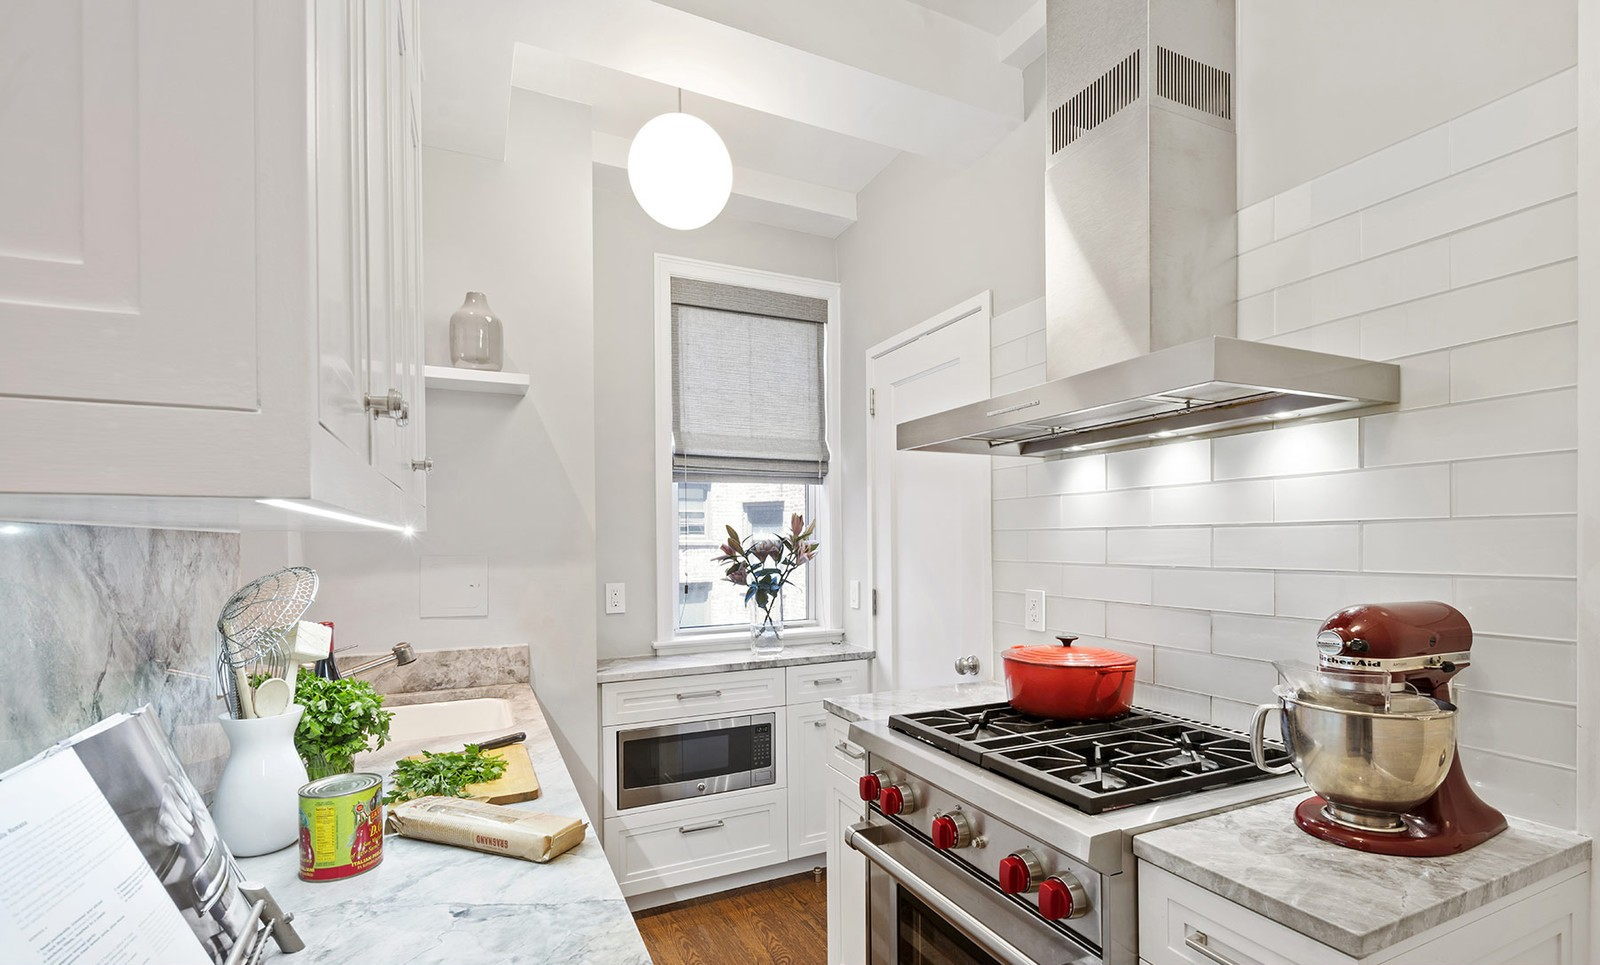 Gray and White kitchen with marble quartzite countertop and stainless appliances